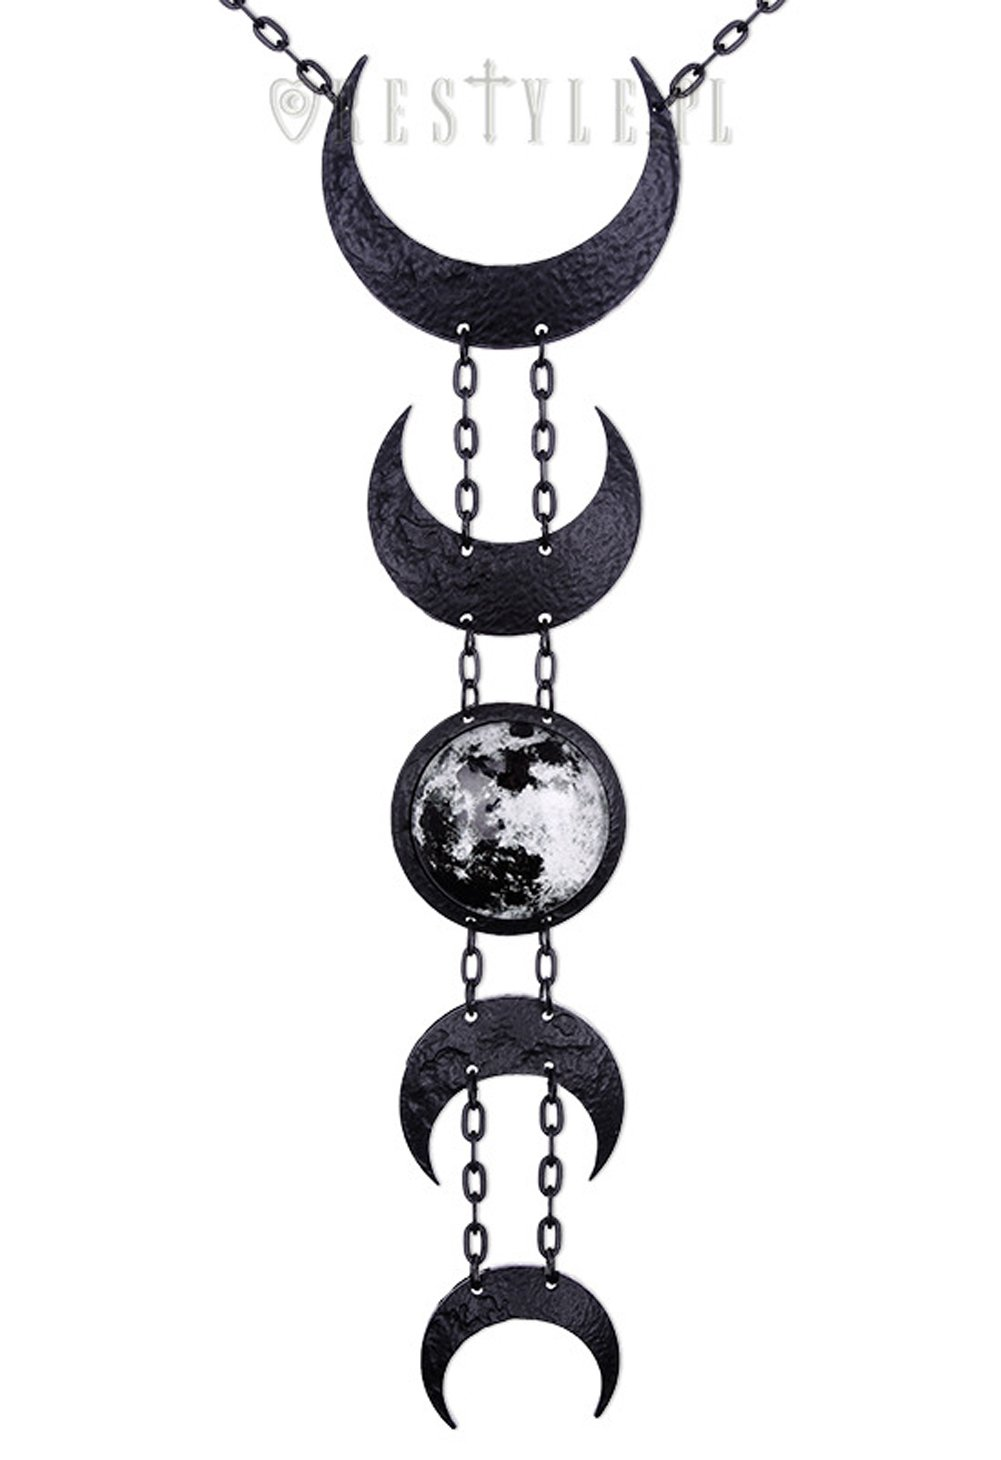 Restyle Lunar Black Necklace by RE Style